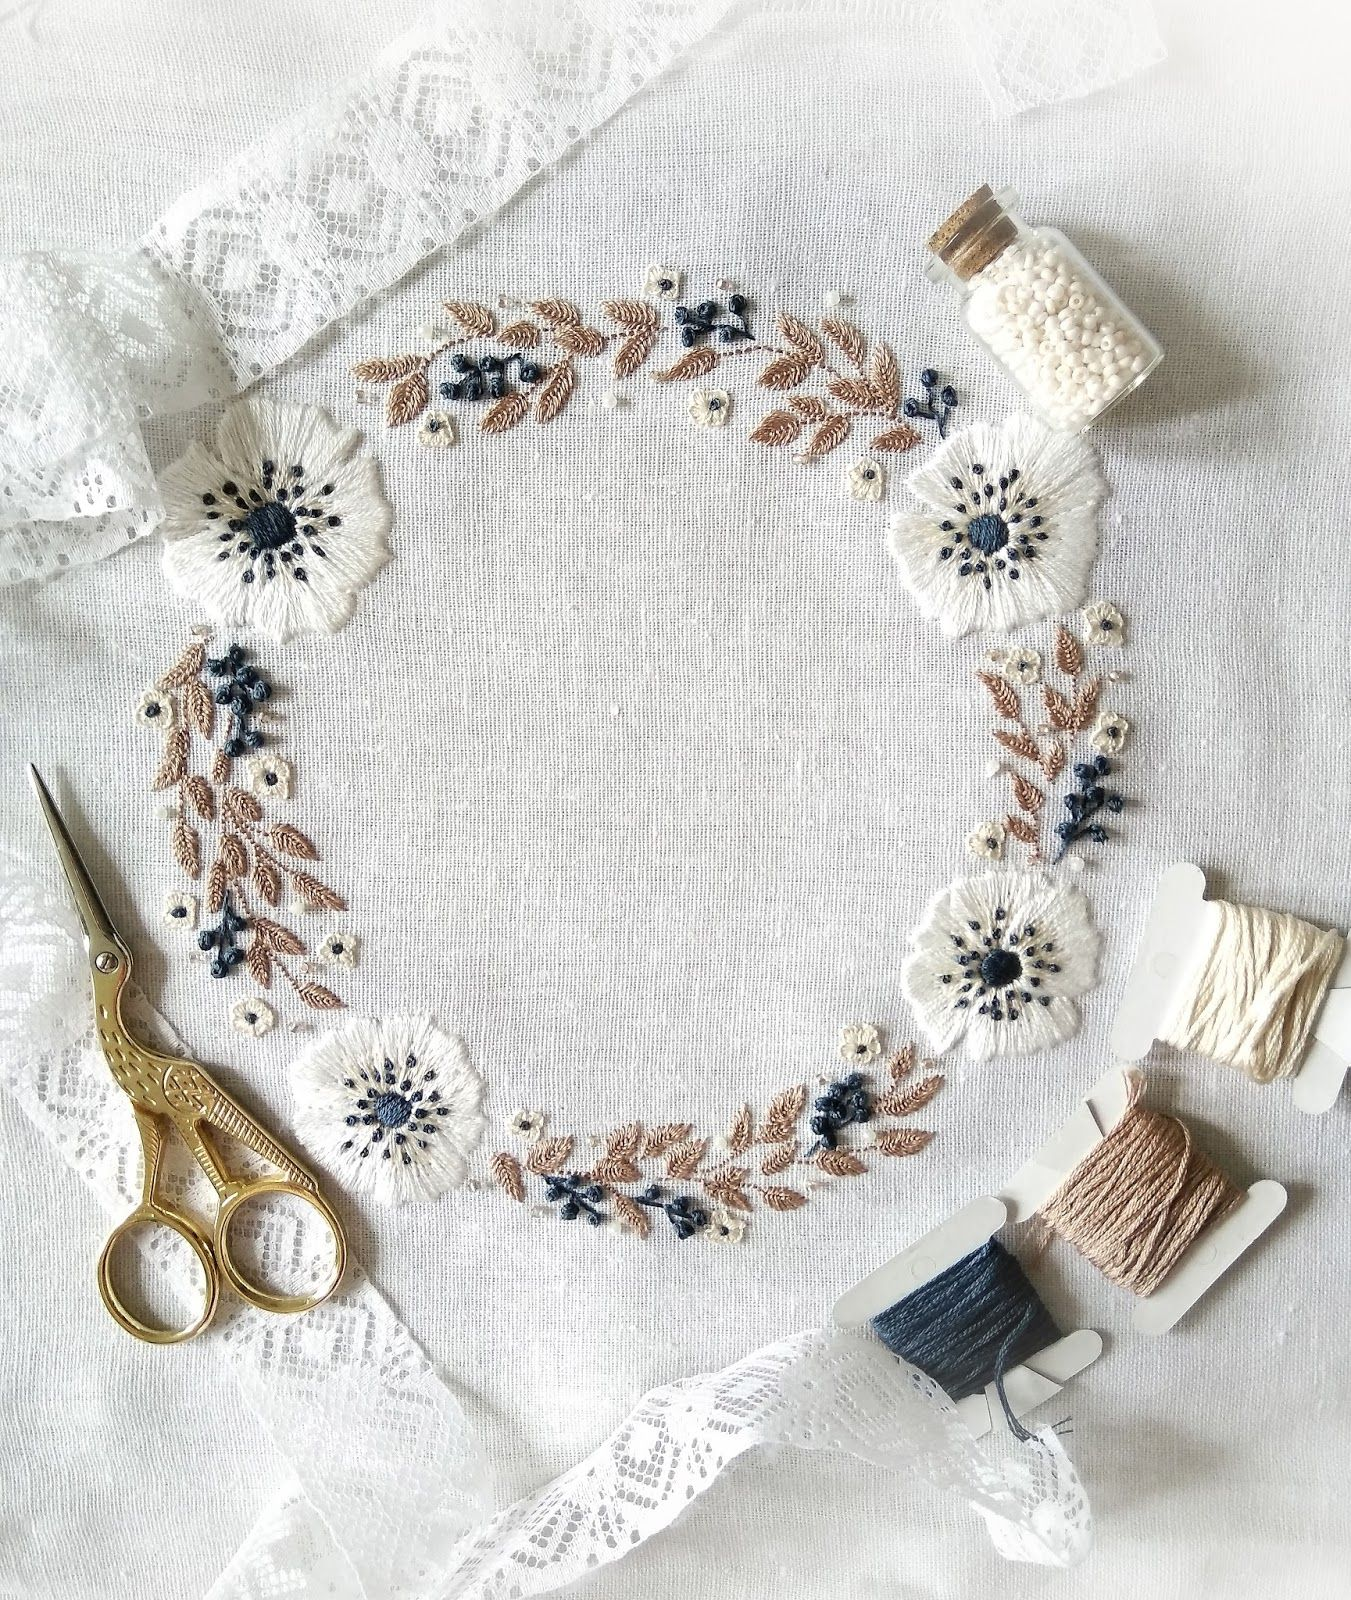 Quot winter joy a lovely floral wreath with white anemones